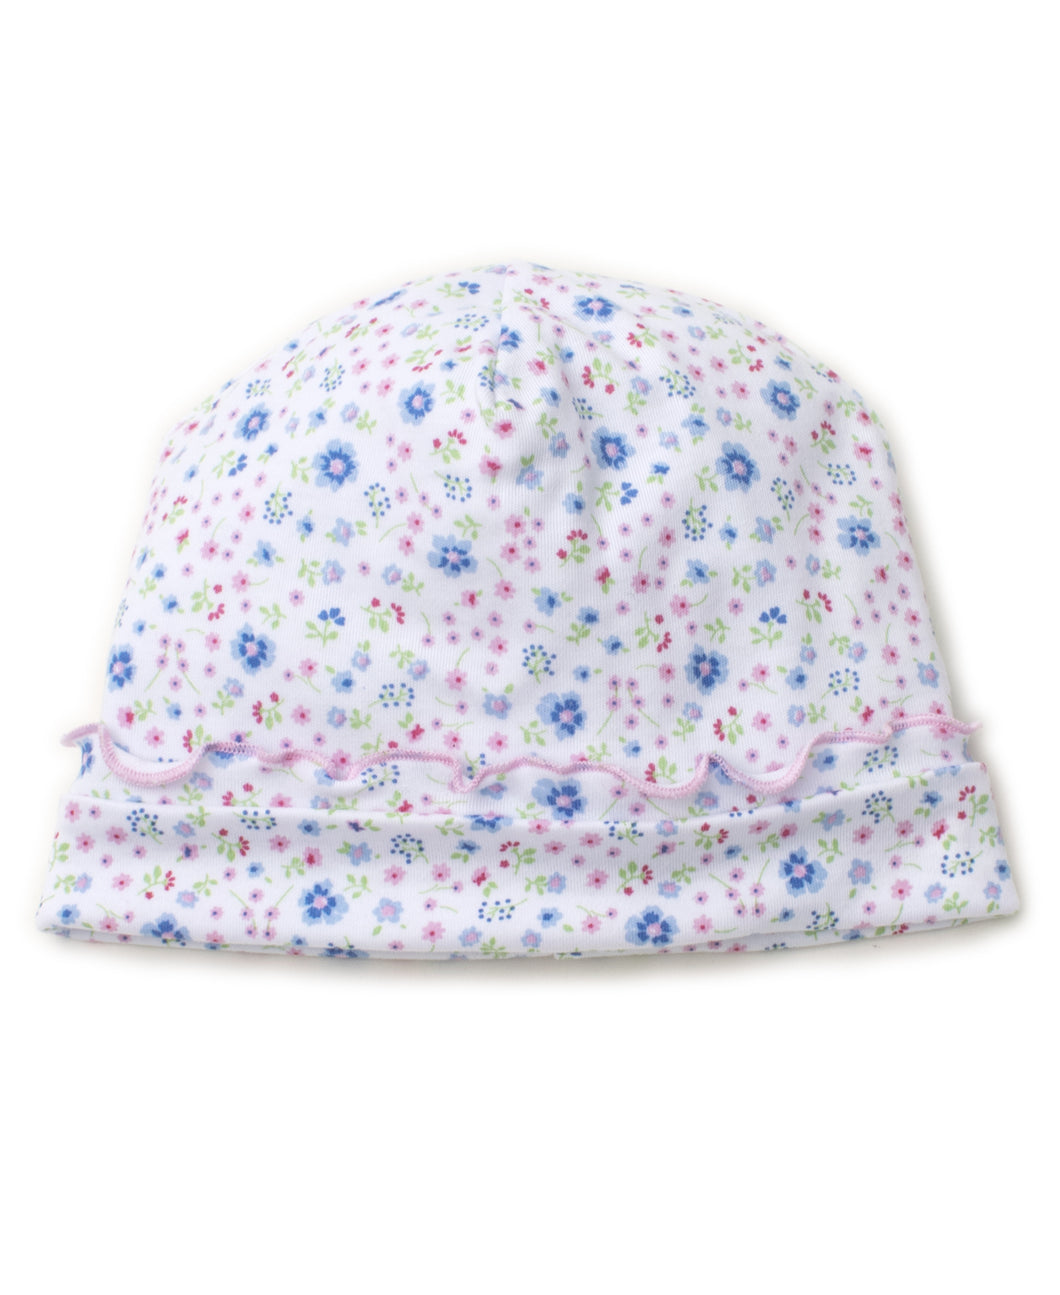 Garden Treasure Hat - Blue